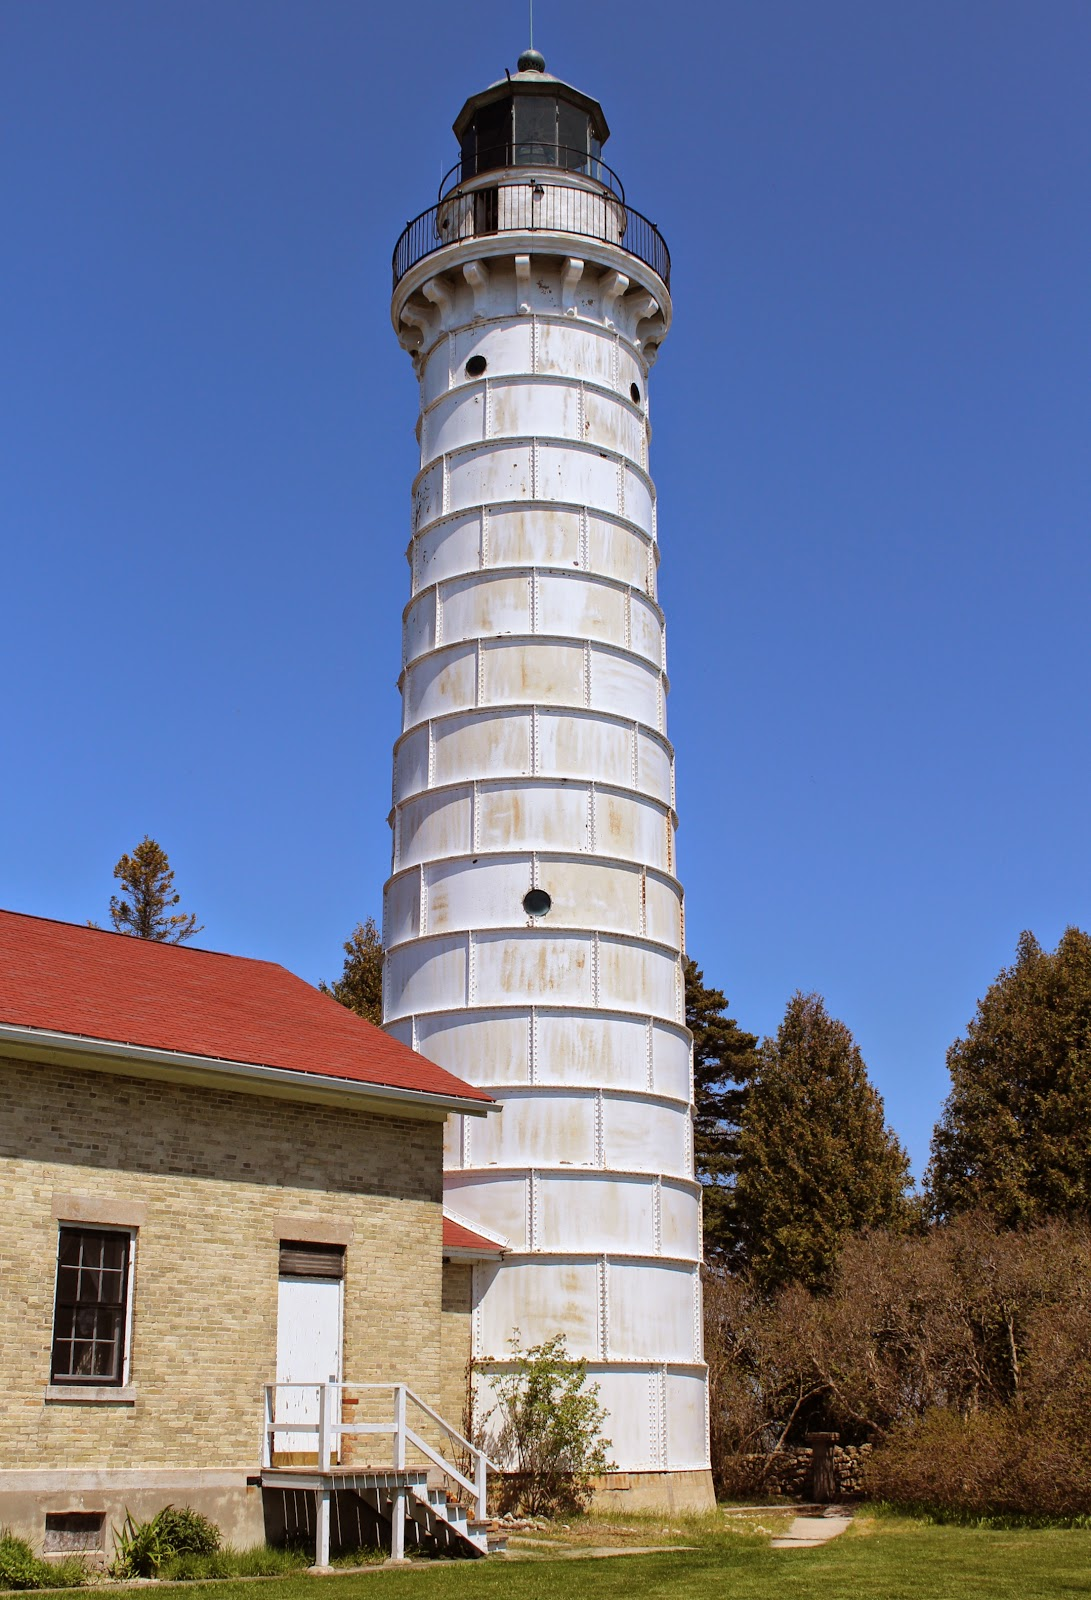 Where Is The Lighthouse Located In Dead Island